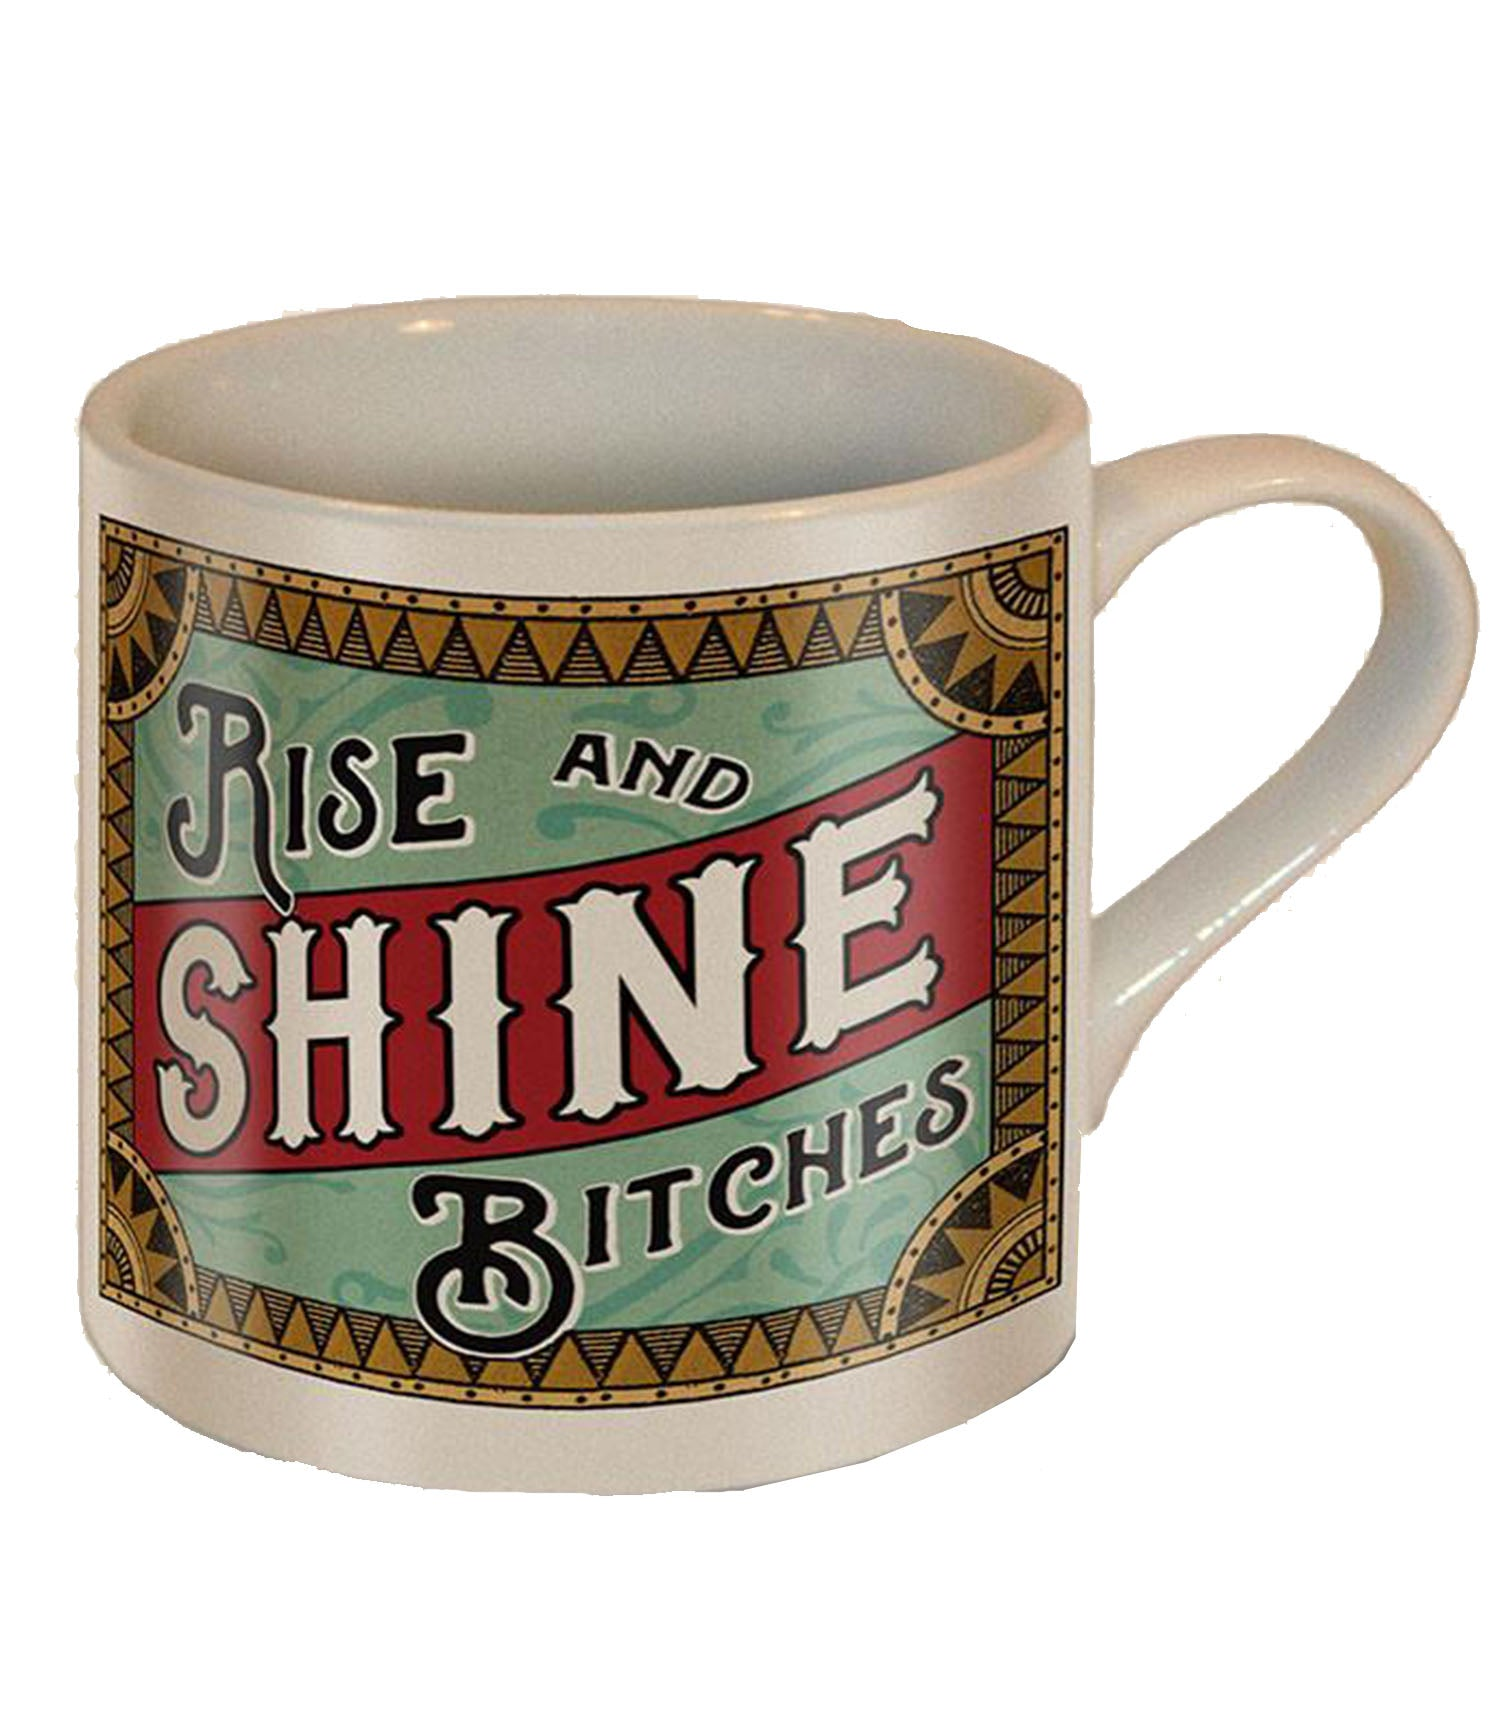 The RISE AND SHINE BITCHES Mug